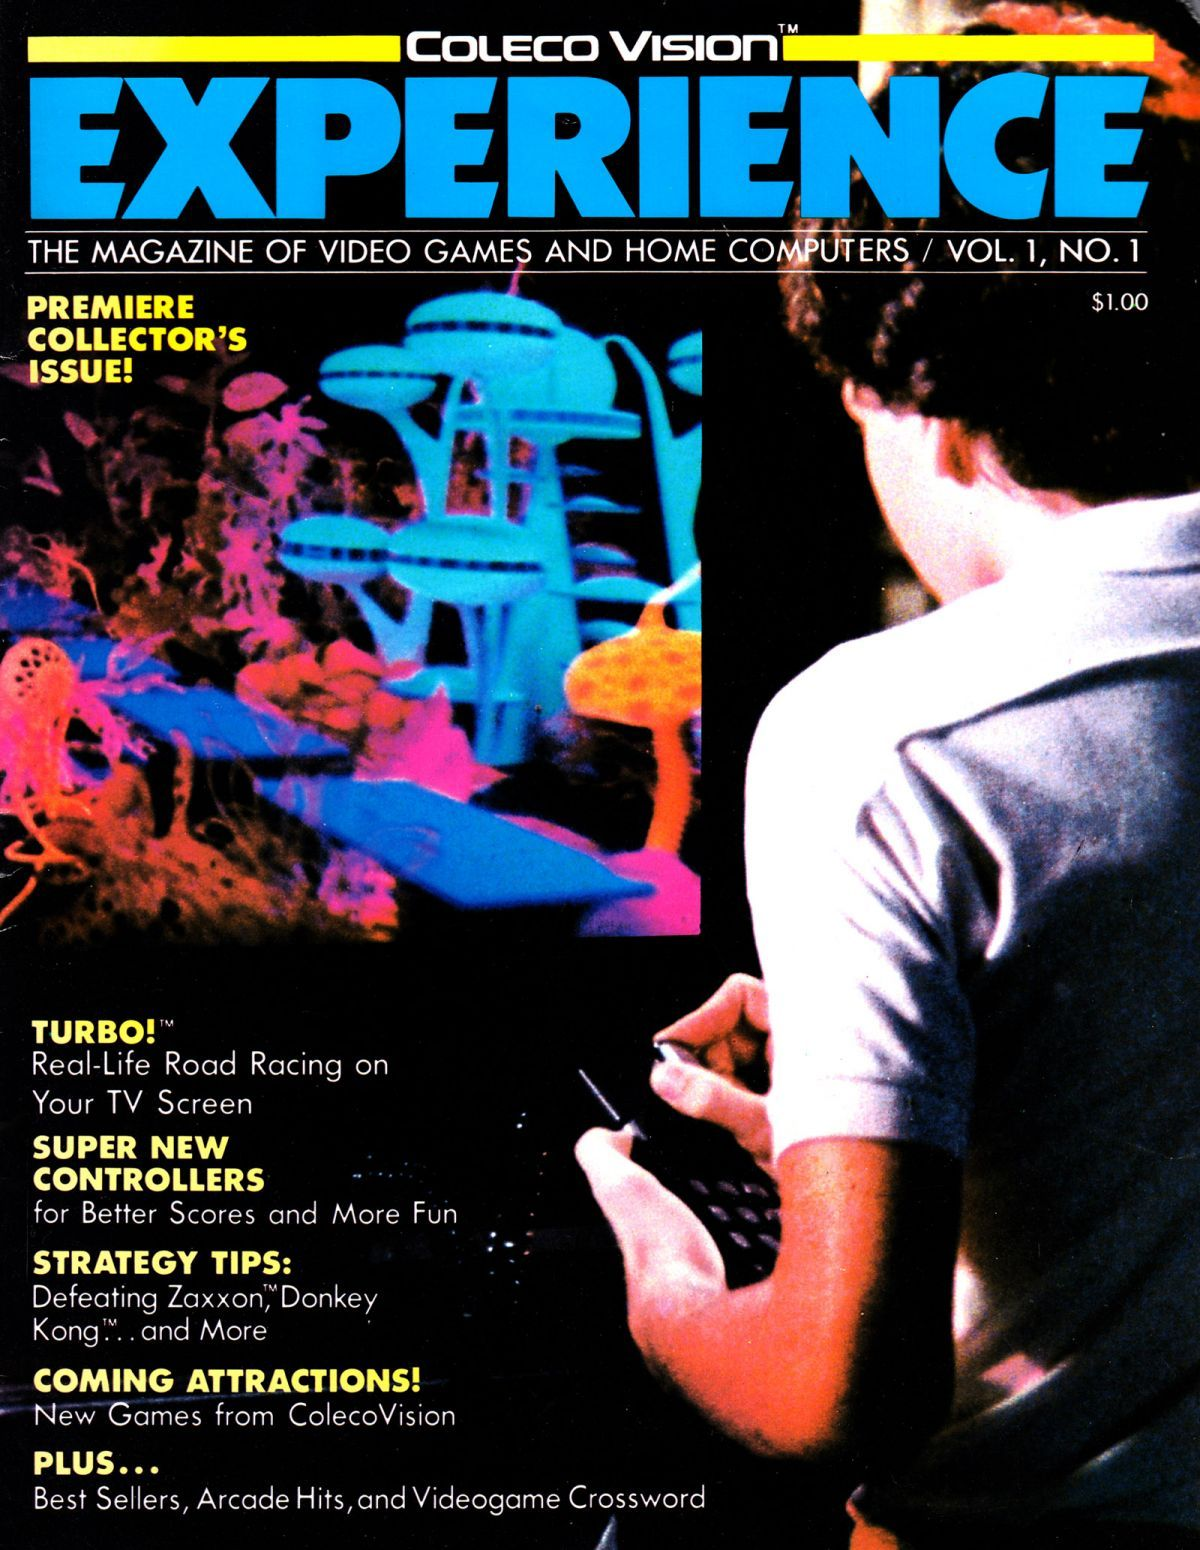 ColecoVision Experience Issue 1 - ColecoVision Experience - Retromags Community